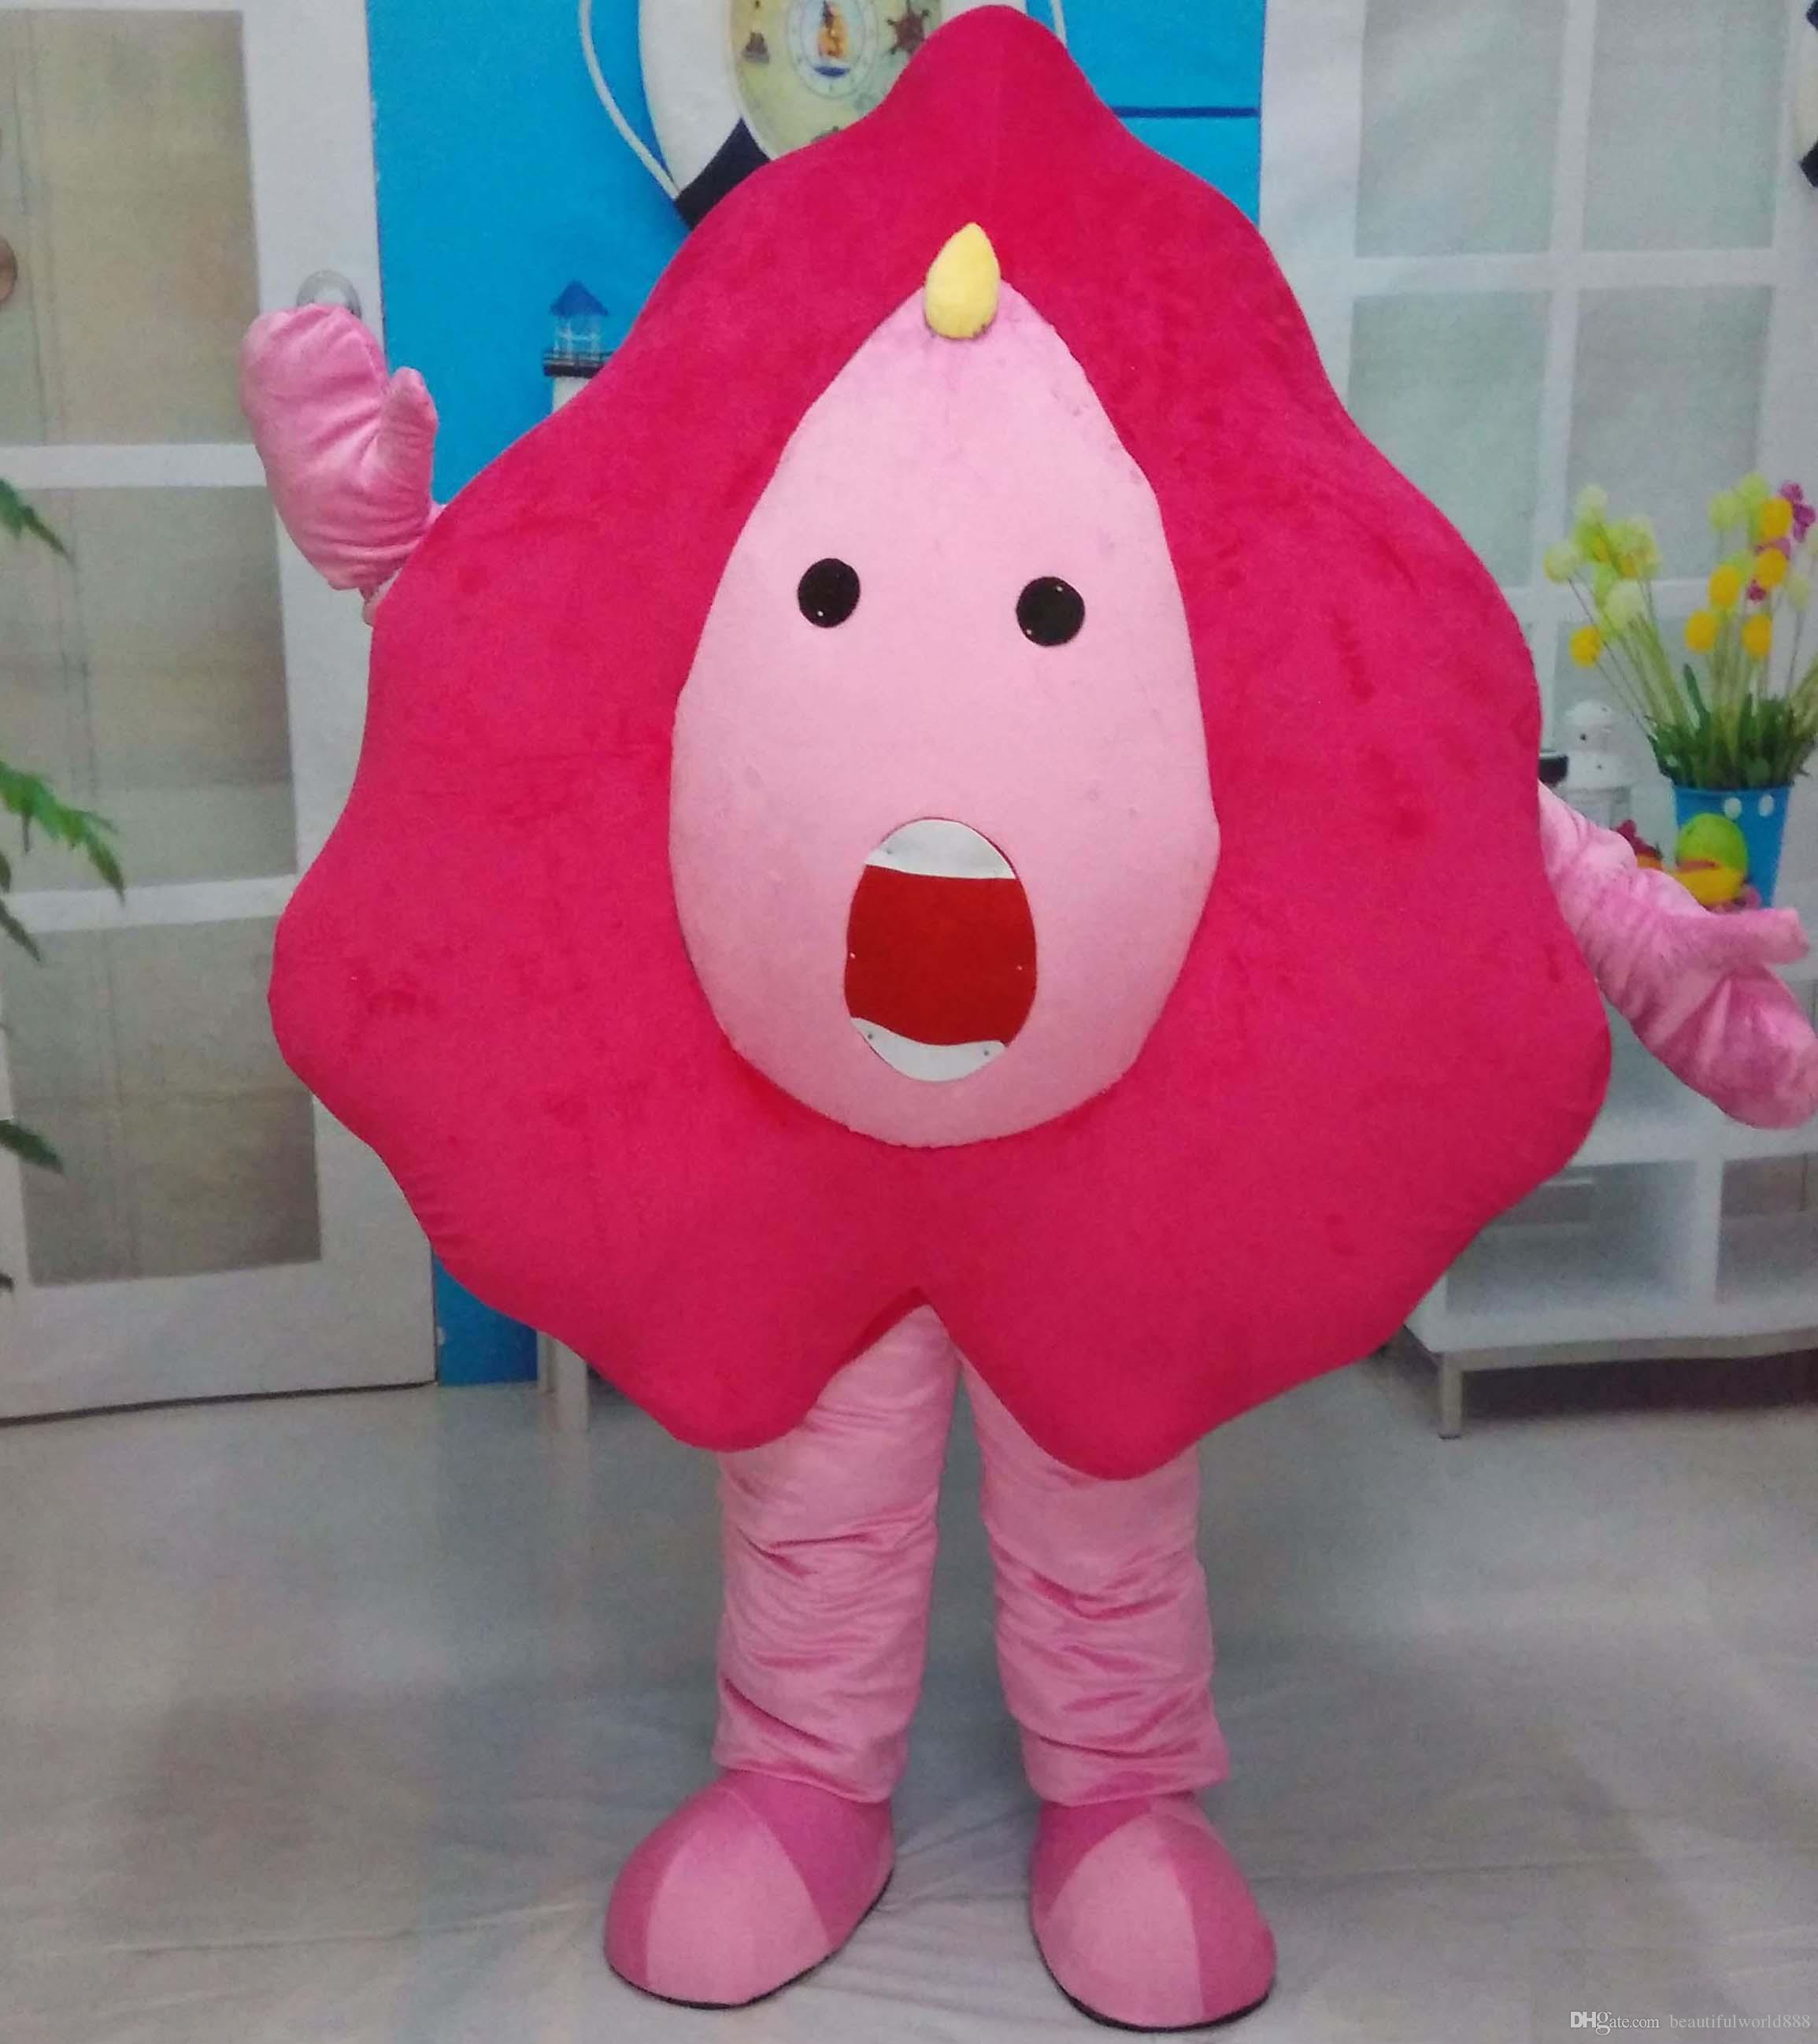 2018 High quality Good vision good Ventilation a pink doll mascot custume with a big face for sale